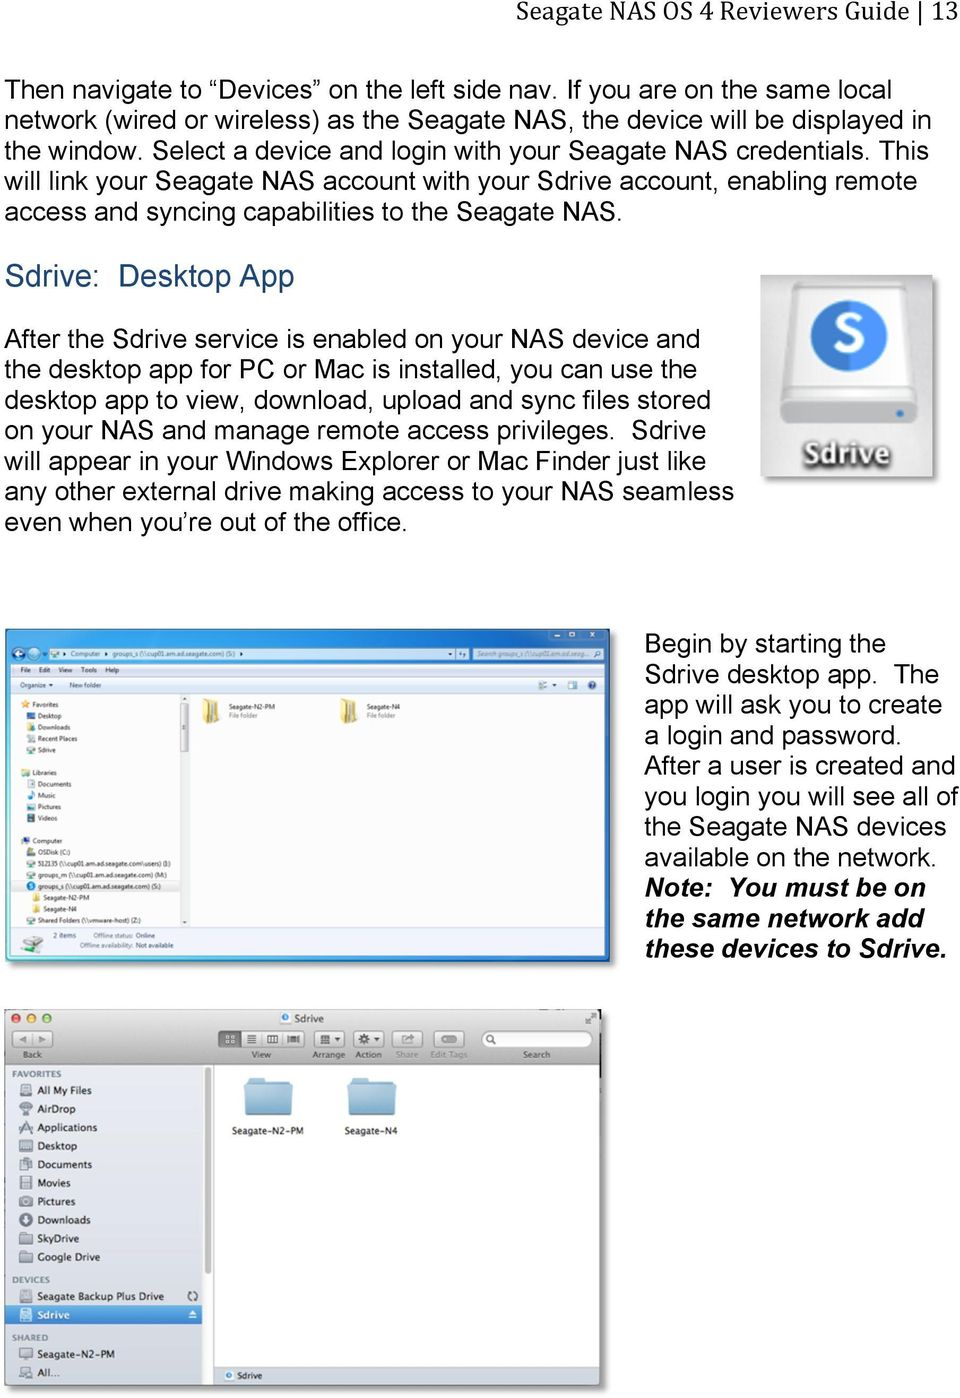 This will link your Seagate NAS account with your Sdrive account, enabling remote access and syncing capabilities to the Seagate NAS.